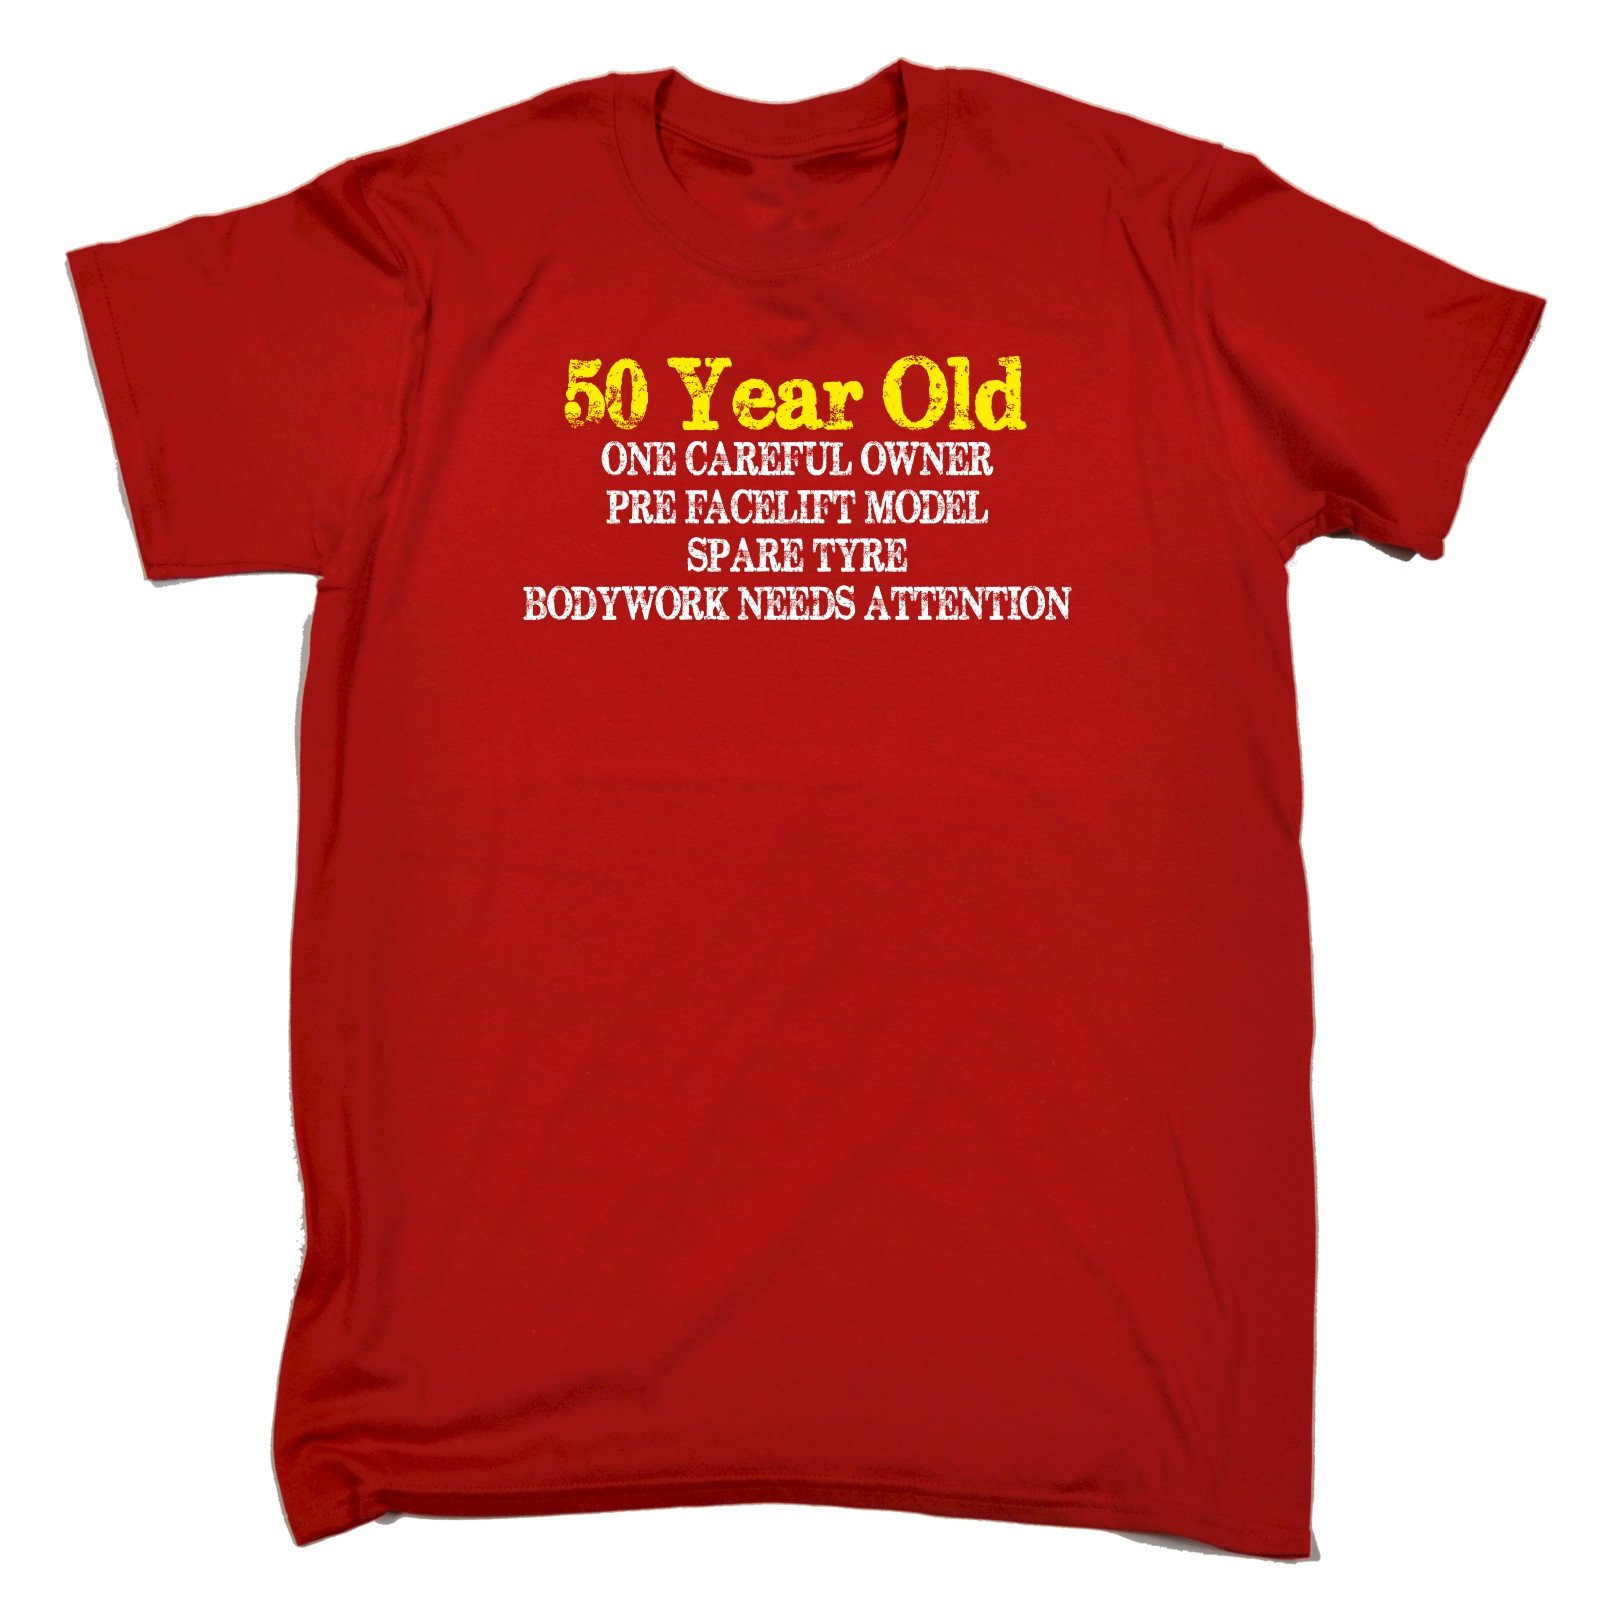 Best ideas about 50 Year Old Birthday Gifts . Save or Pin 50 YEAR OLD ONE CAREFUL OWNER T SHIRT tee joke funny Now.